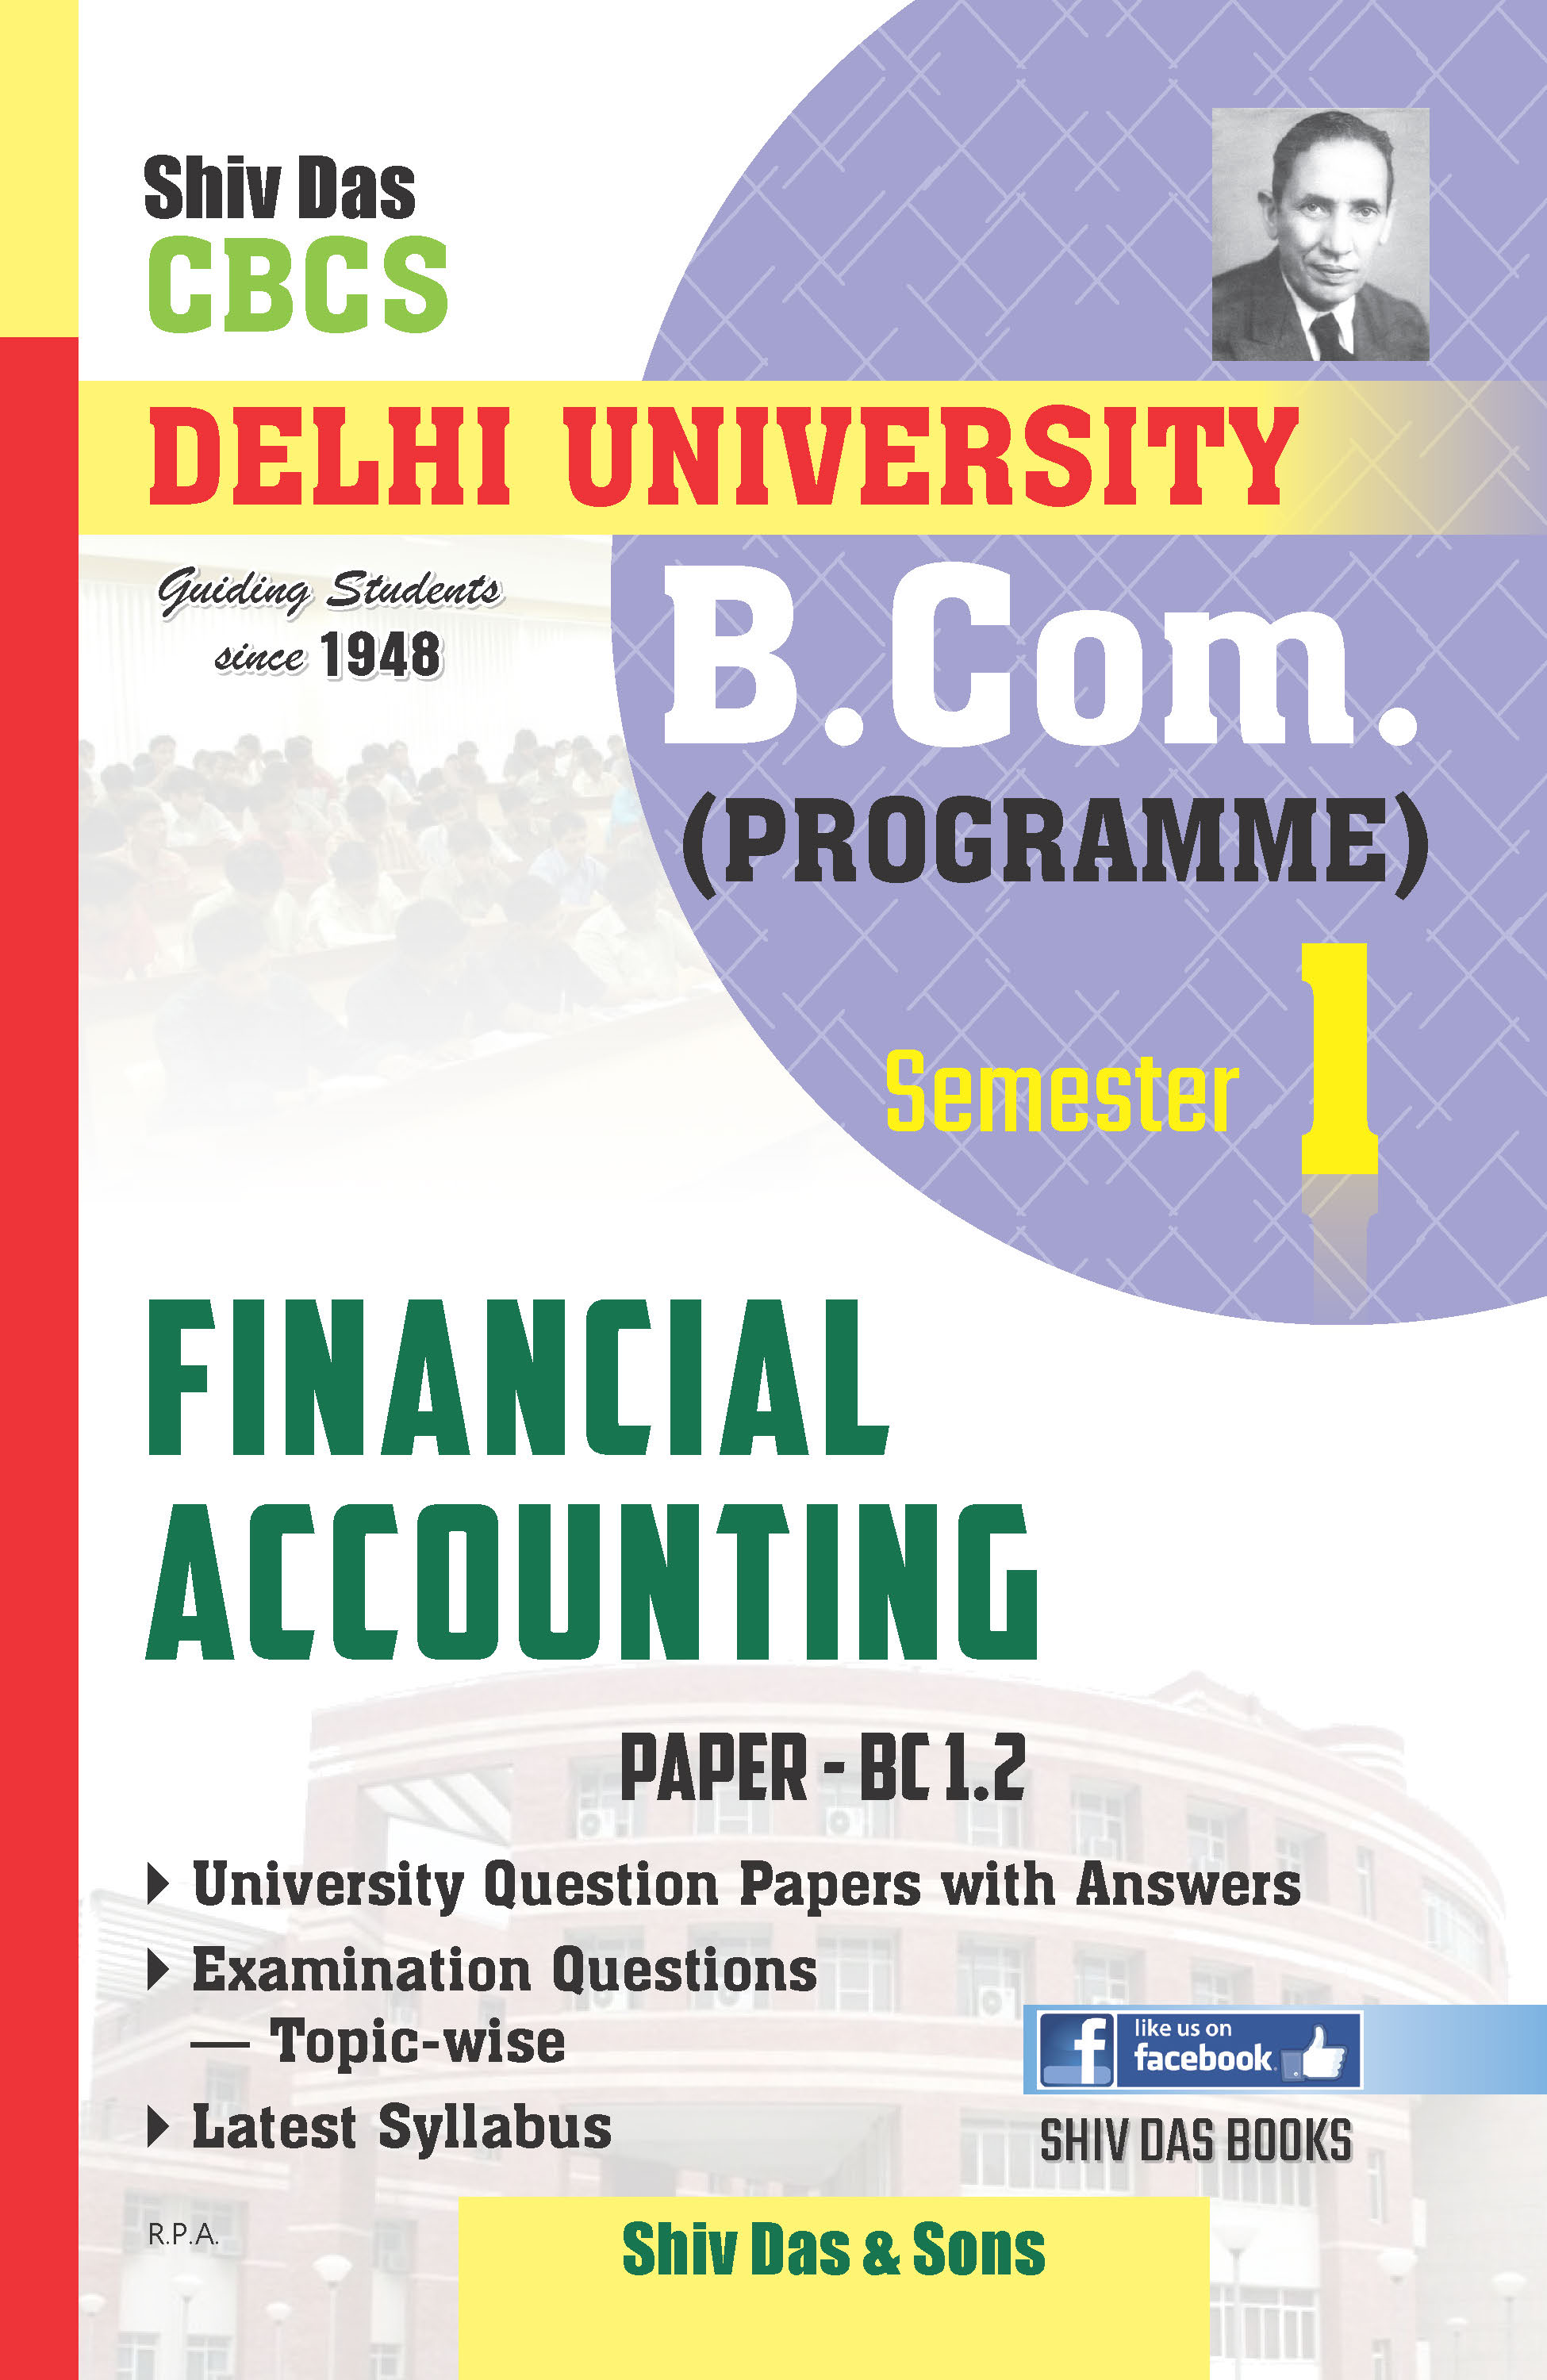 Financial Accounting for B.Com Prog Semester 1 for Delhi University by Shiv Das